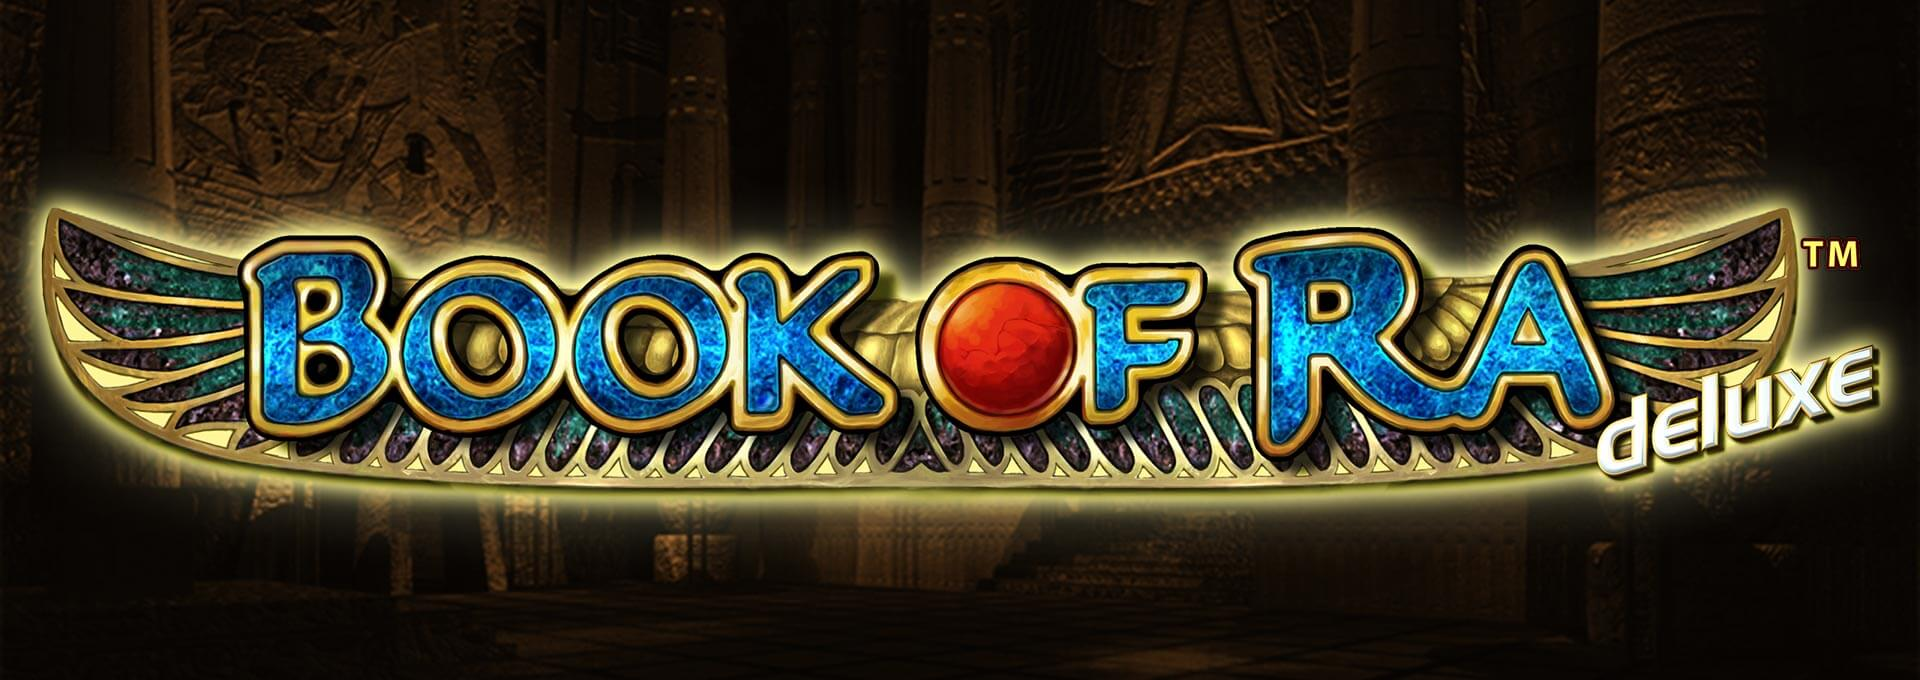 casino reviews online slot book of ra